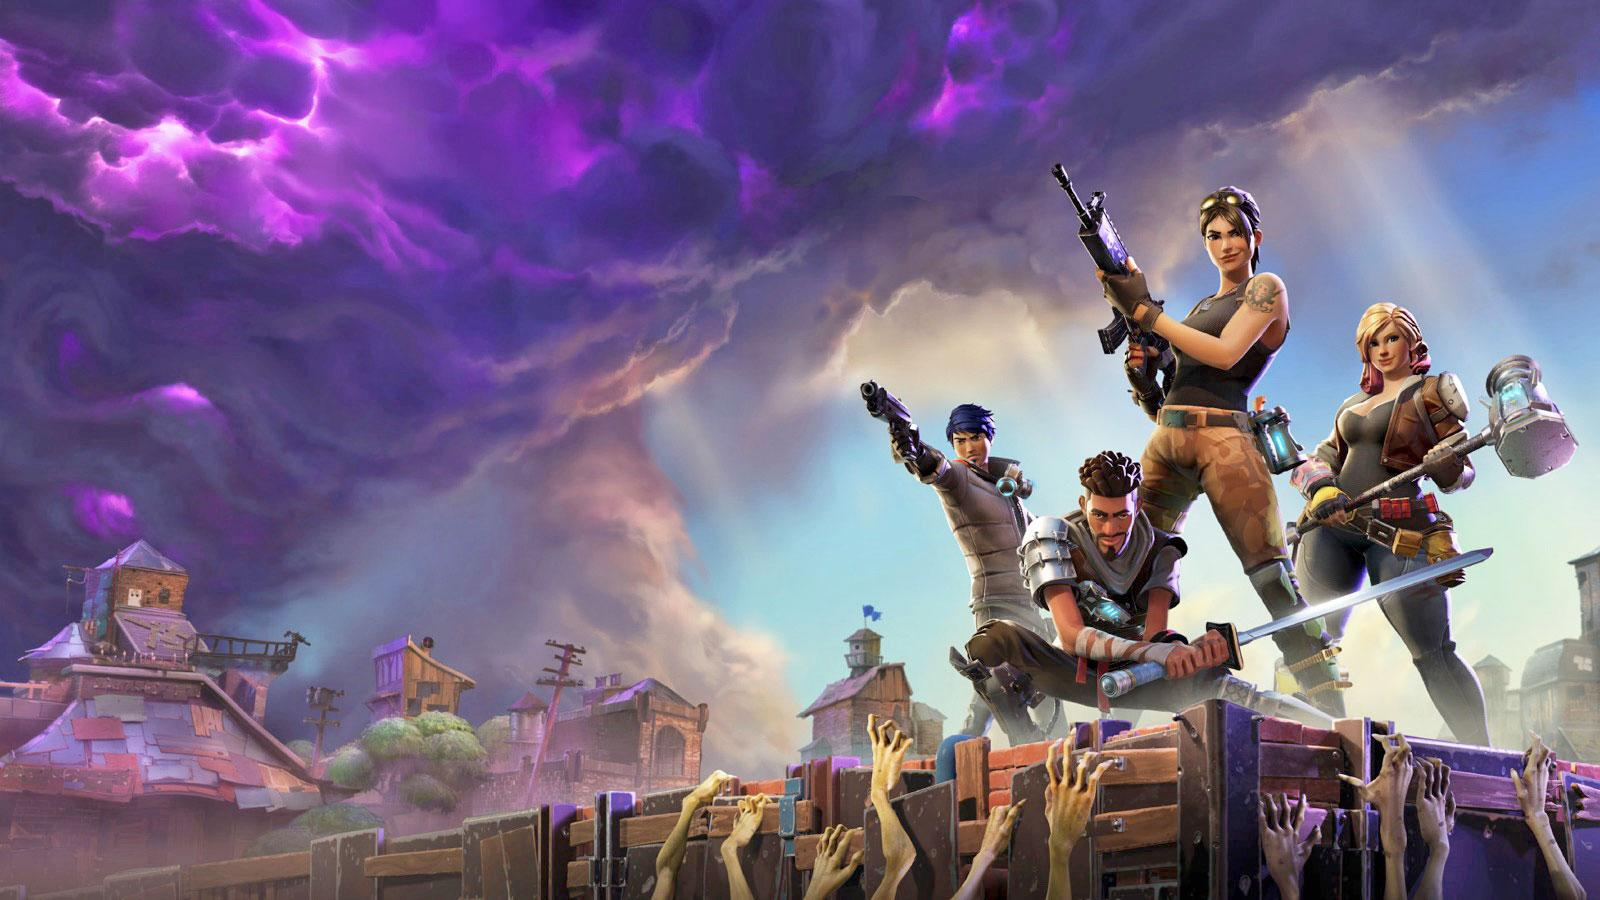 Epic S Long Awaited Fortnite Hits Consoles And Pc July 25th Engadget